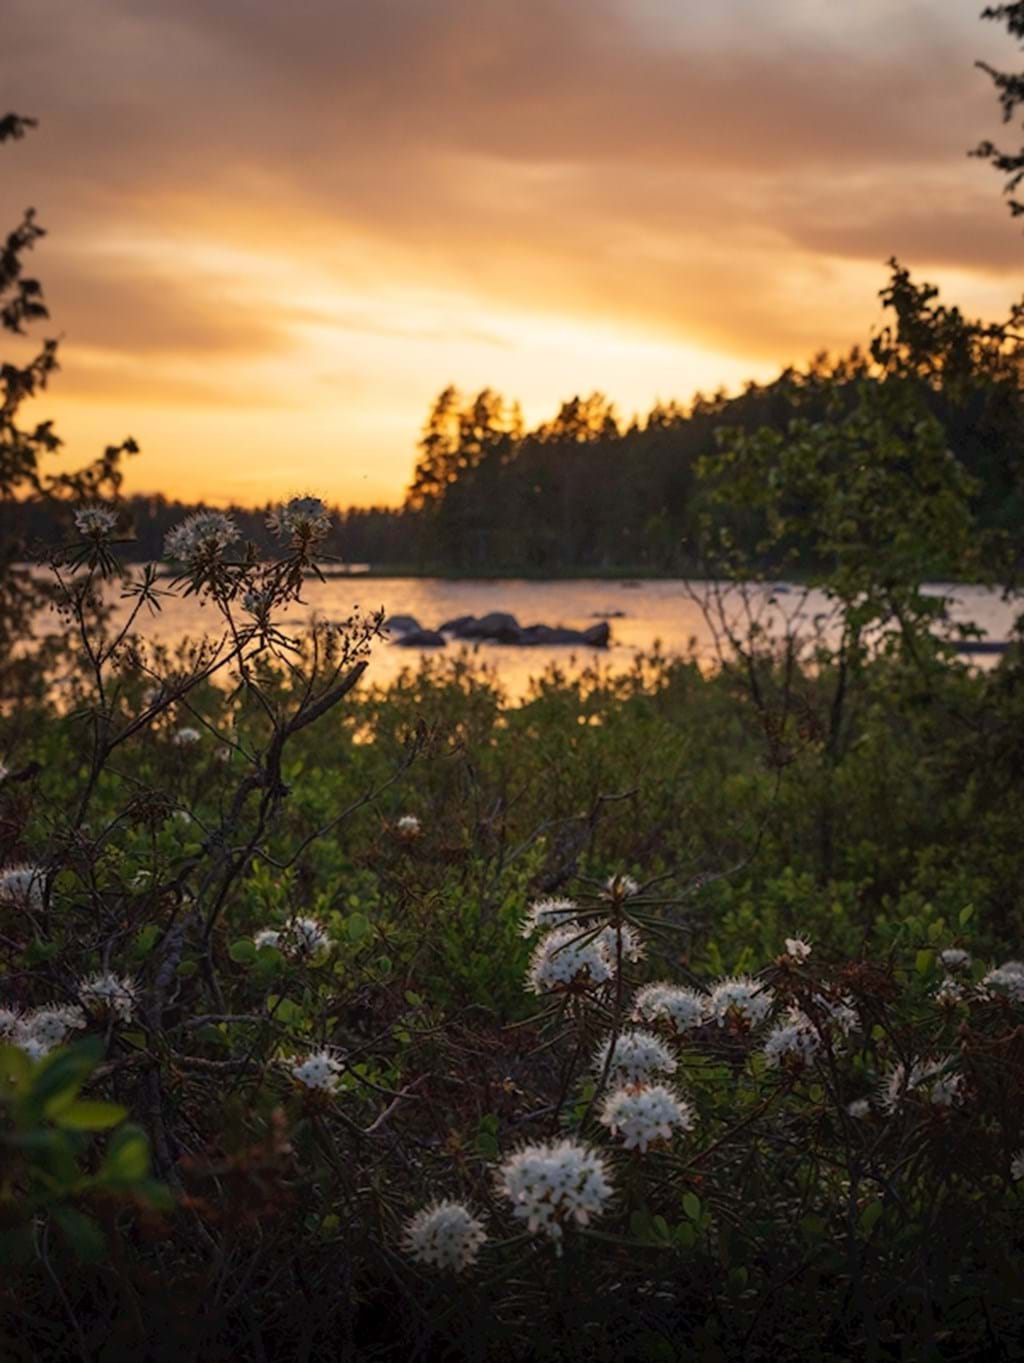 Poster: A traditional Swedish sunset - Nature